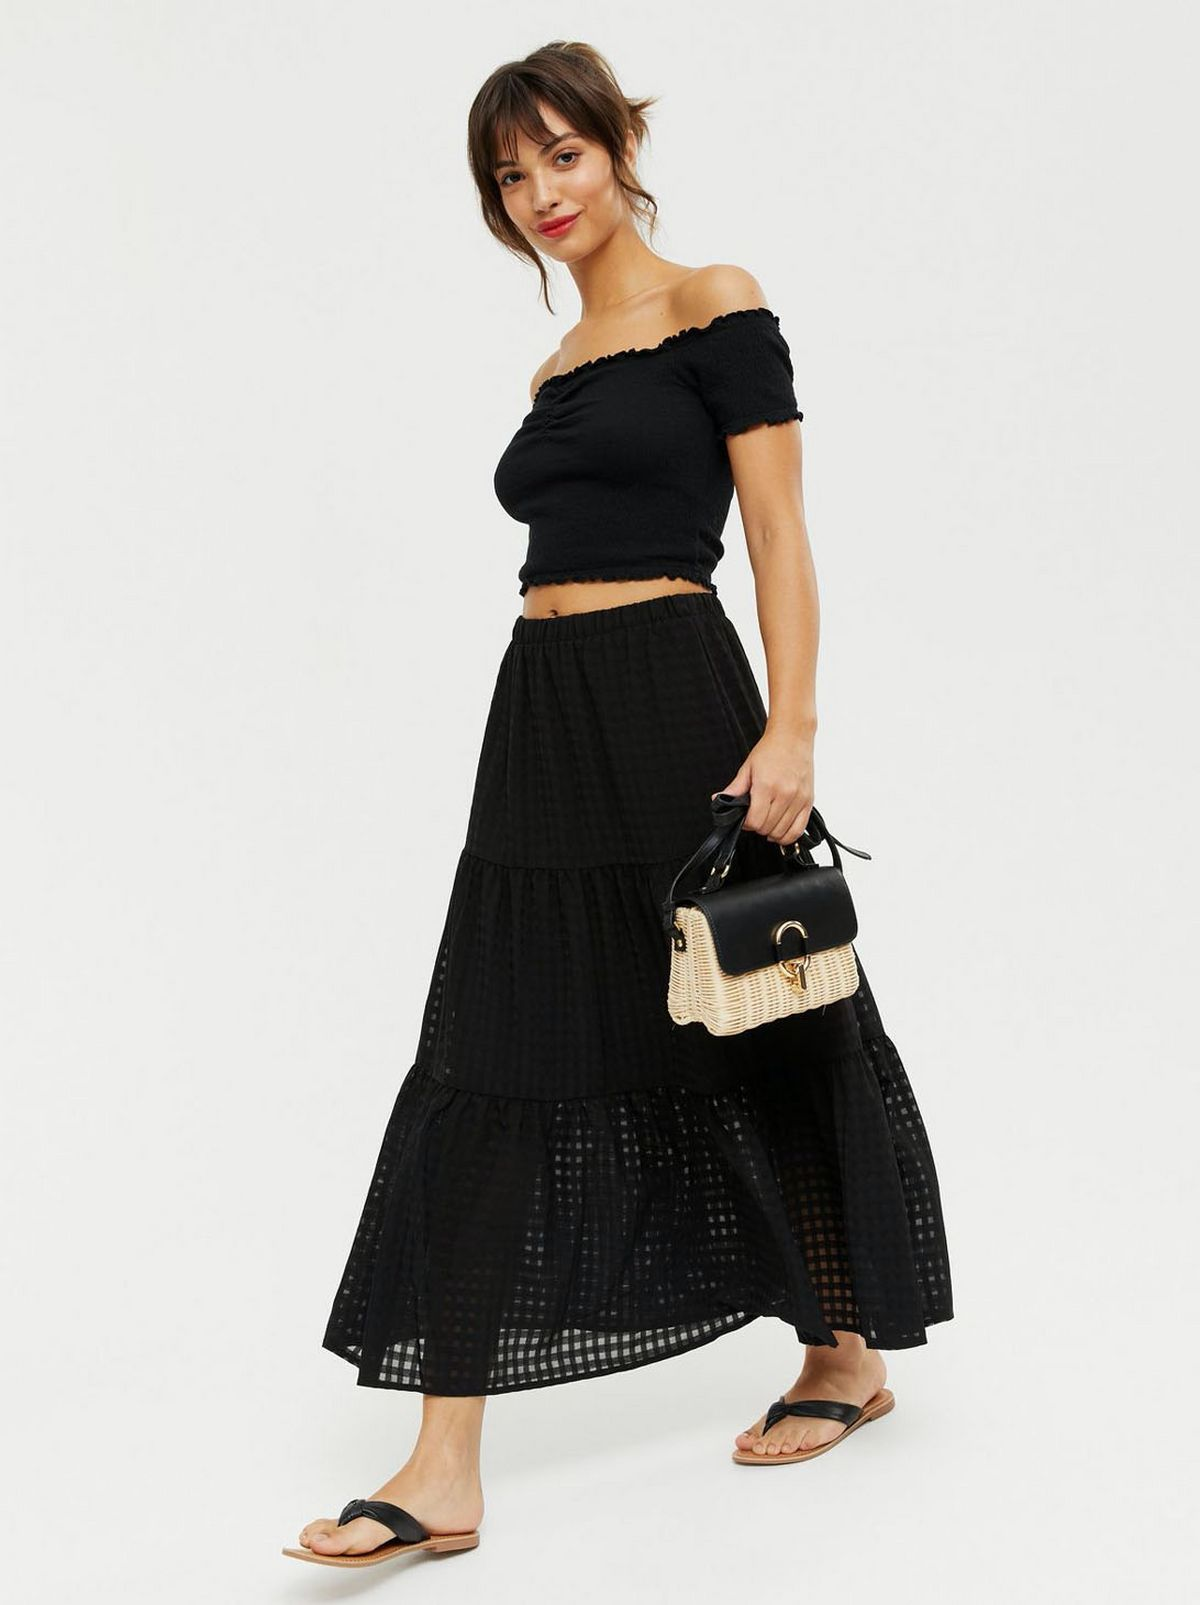 Woman wearing a black gingham high waist tiered midi skirt, black off shoulder top and sliders